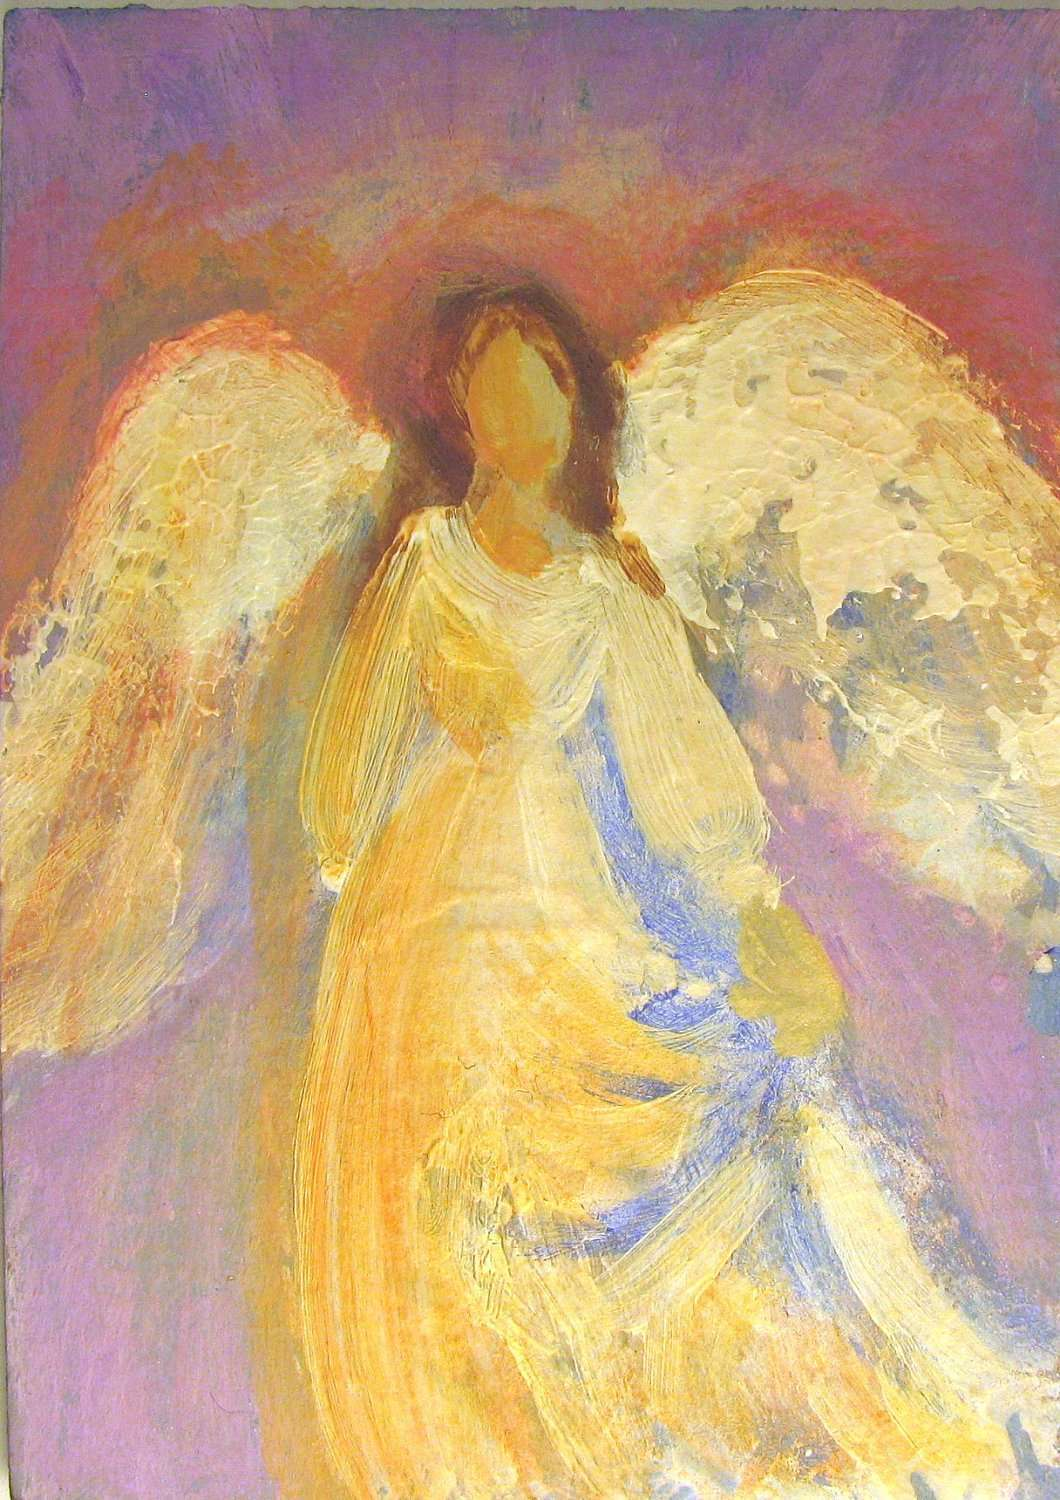 Angels watching over me